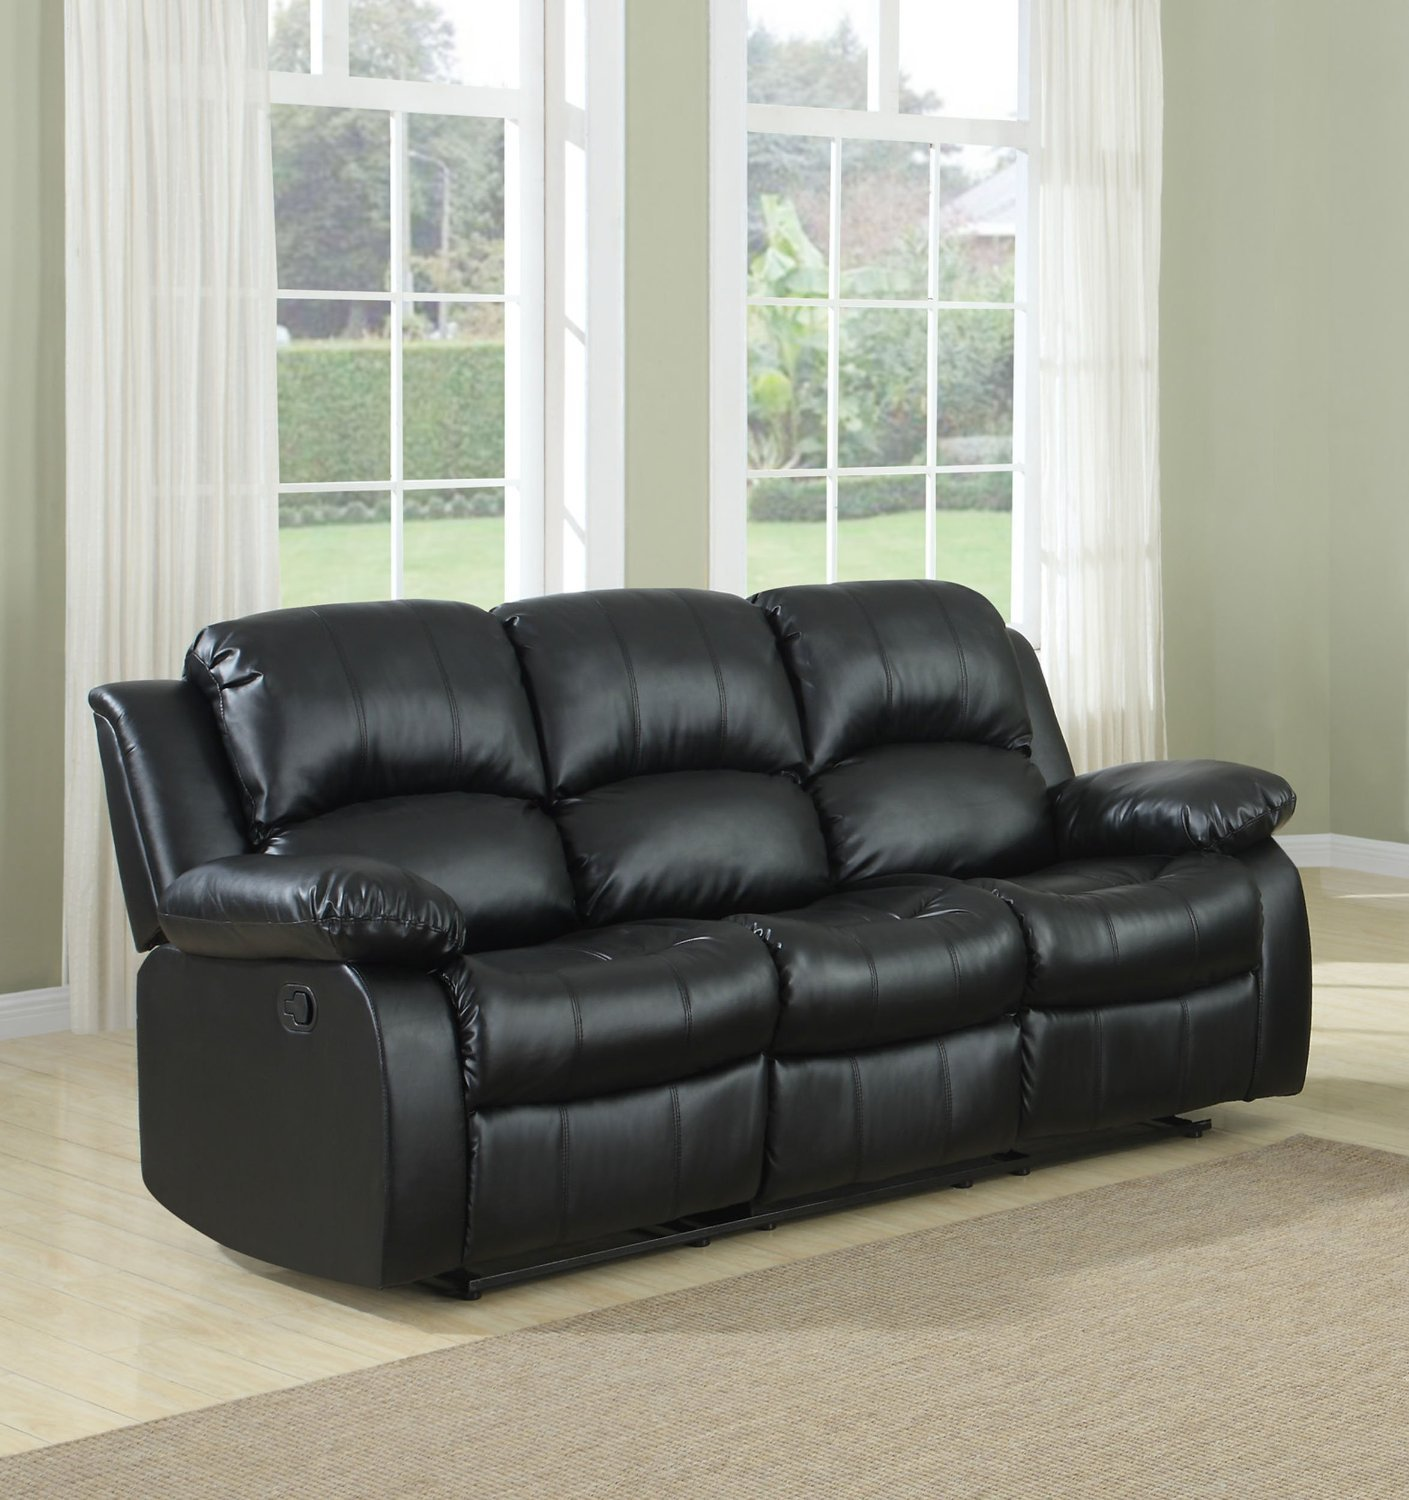 & Amazon.com: Bonded Leather Double Recliner Sofa: Kitchen u0026 Dining islam-shia.org